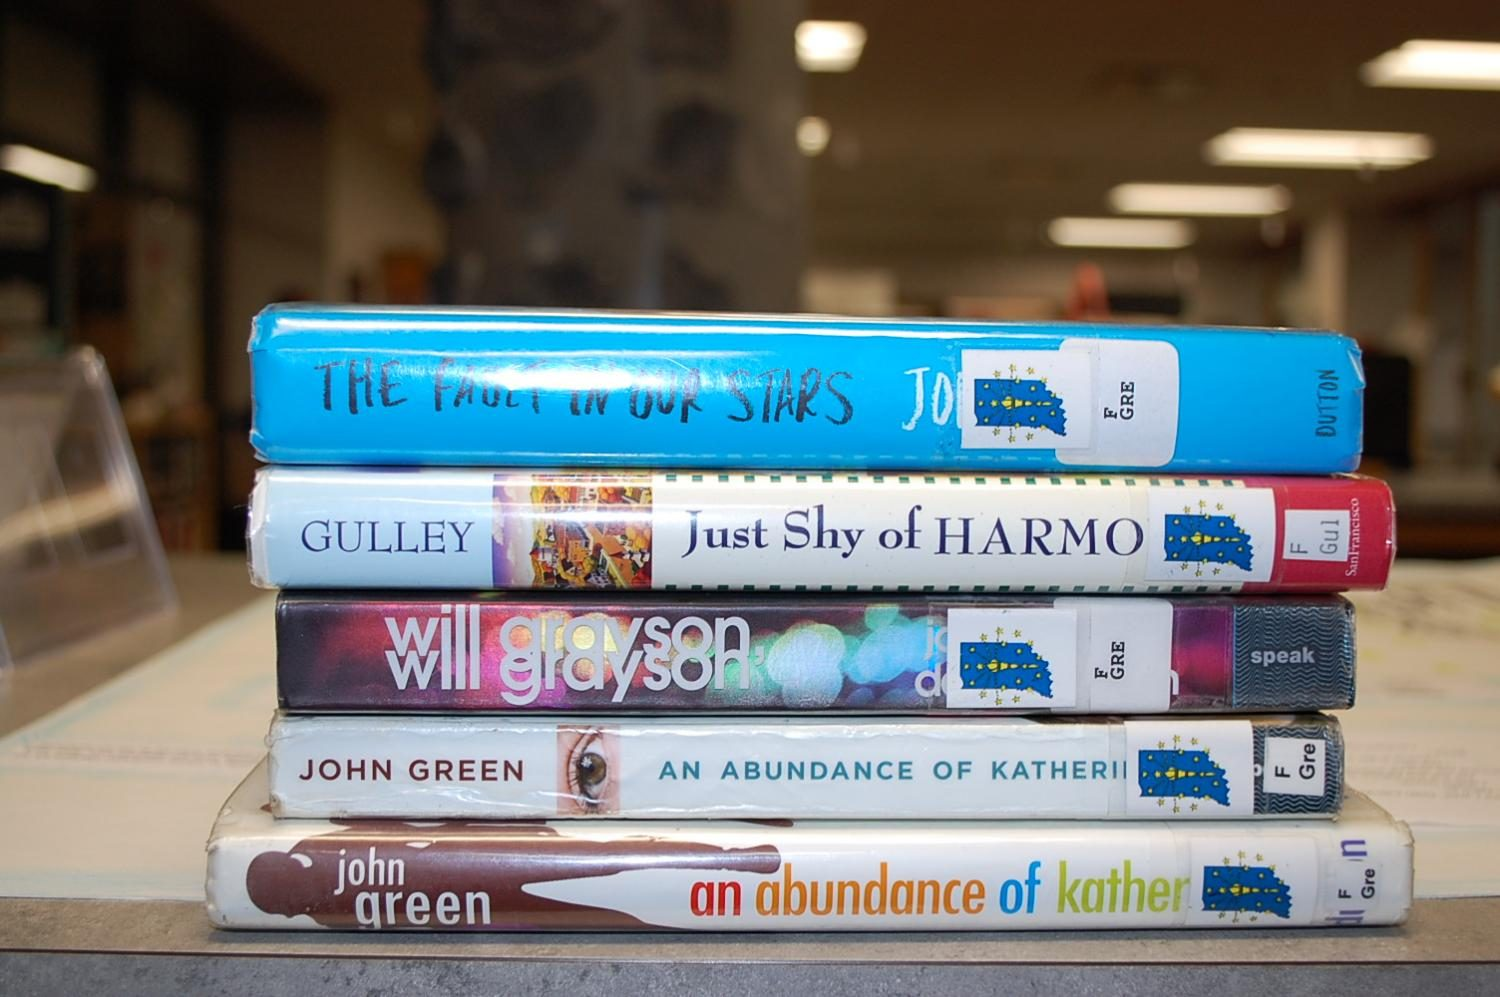 Two+local+authors%2C+John+Green+and+Phillip+Gulley%2C+have+their+book+on+display+at+the+SHS+library.